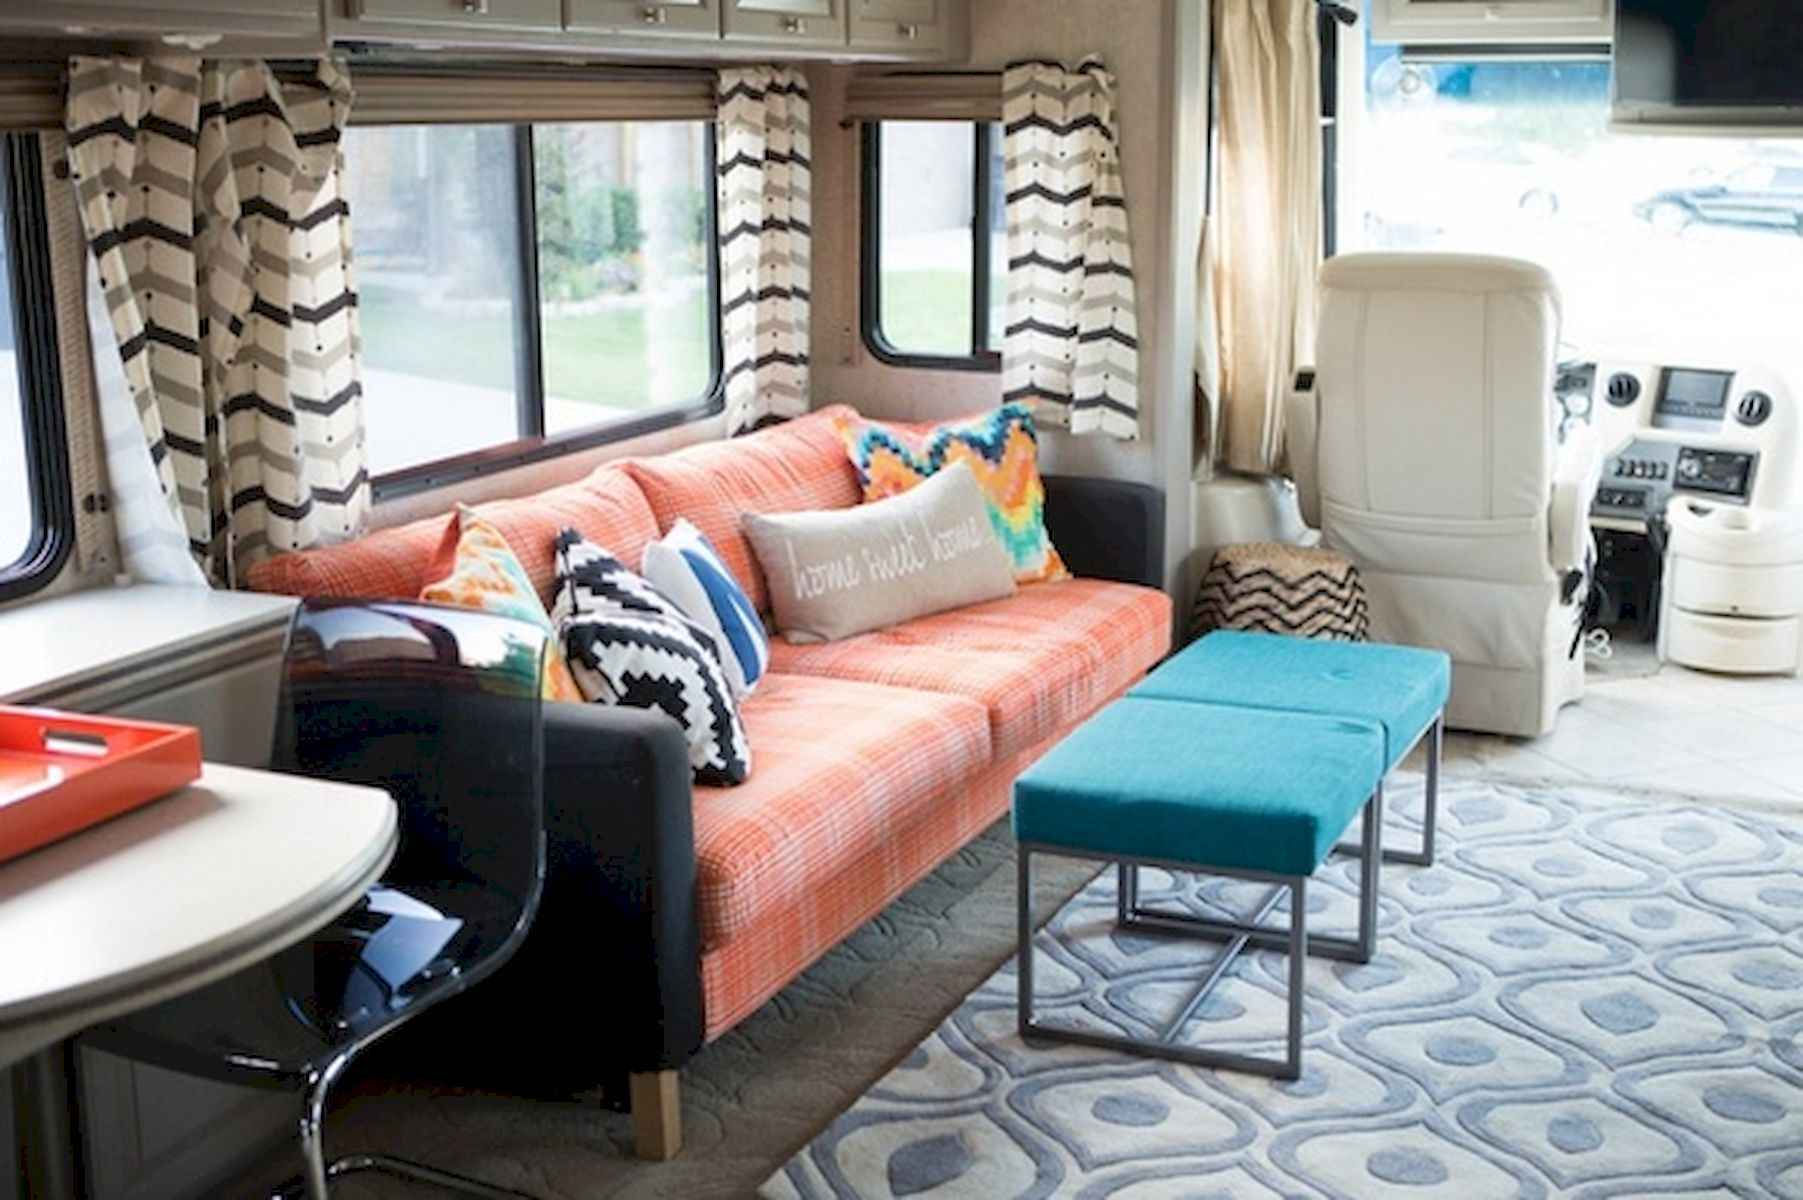 70 Stunning RV Living Camper Room Ideas Decorations Make Your Summer Awesome (23)